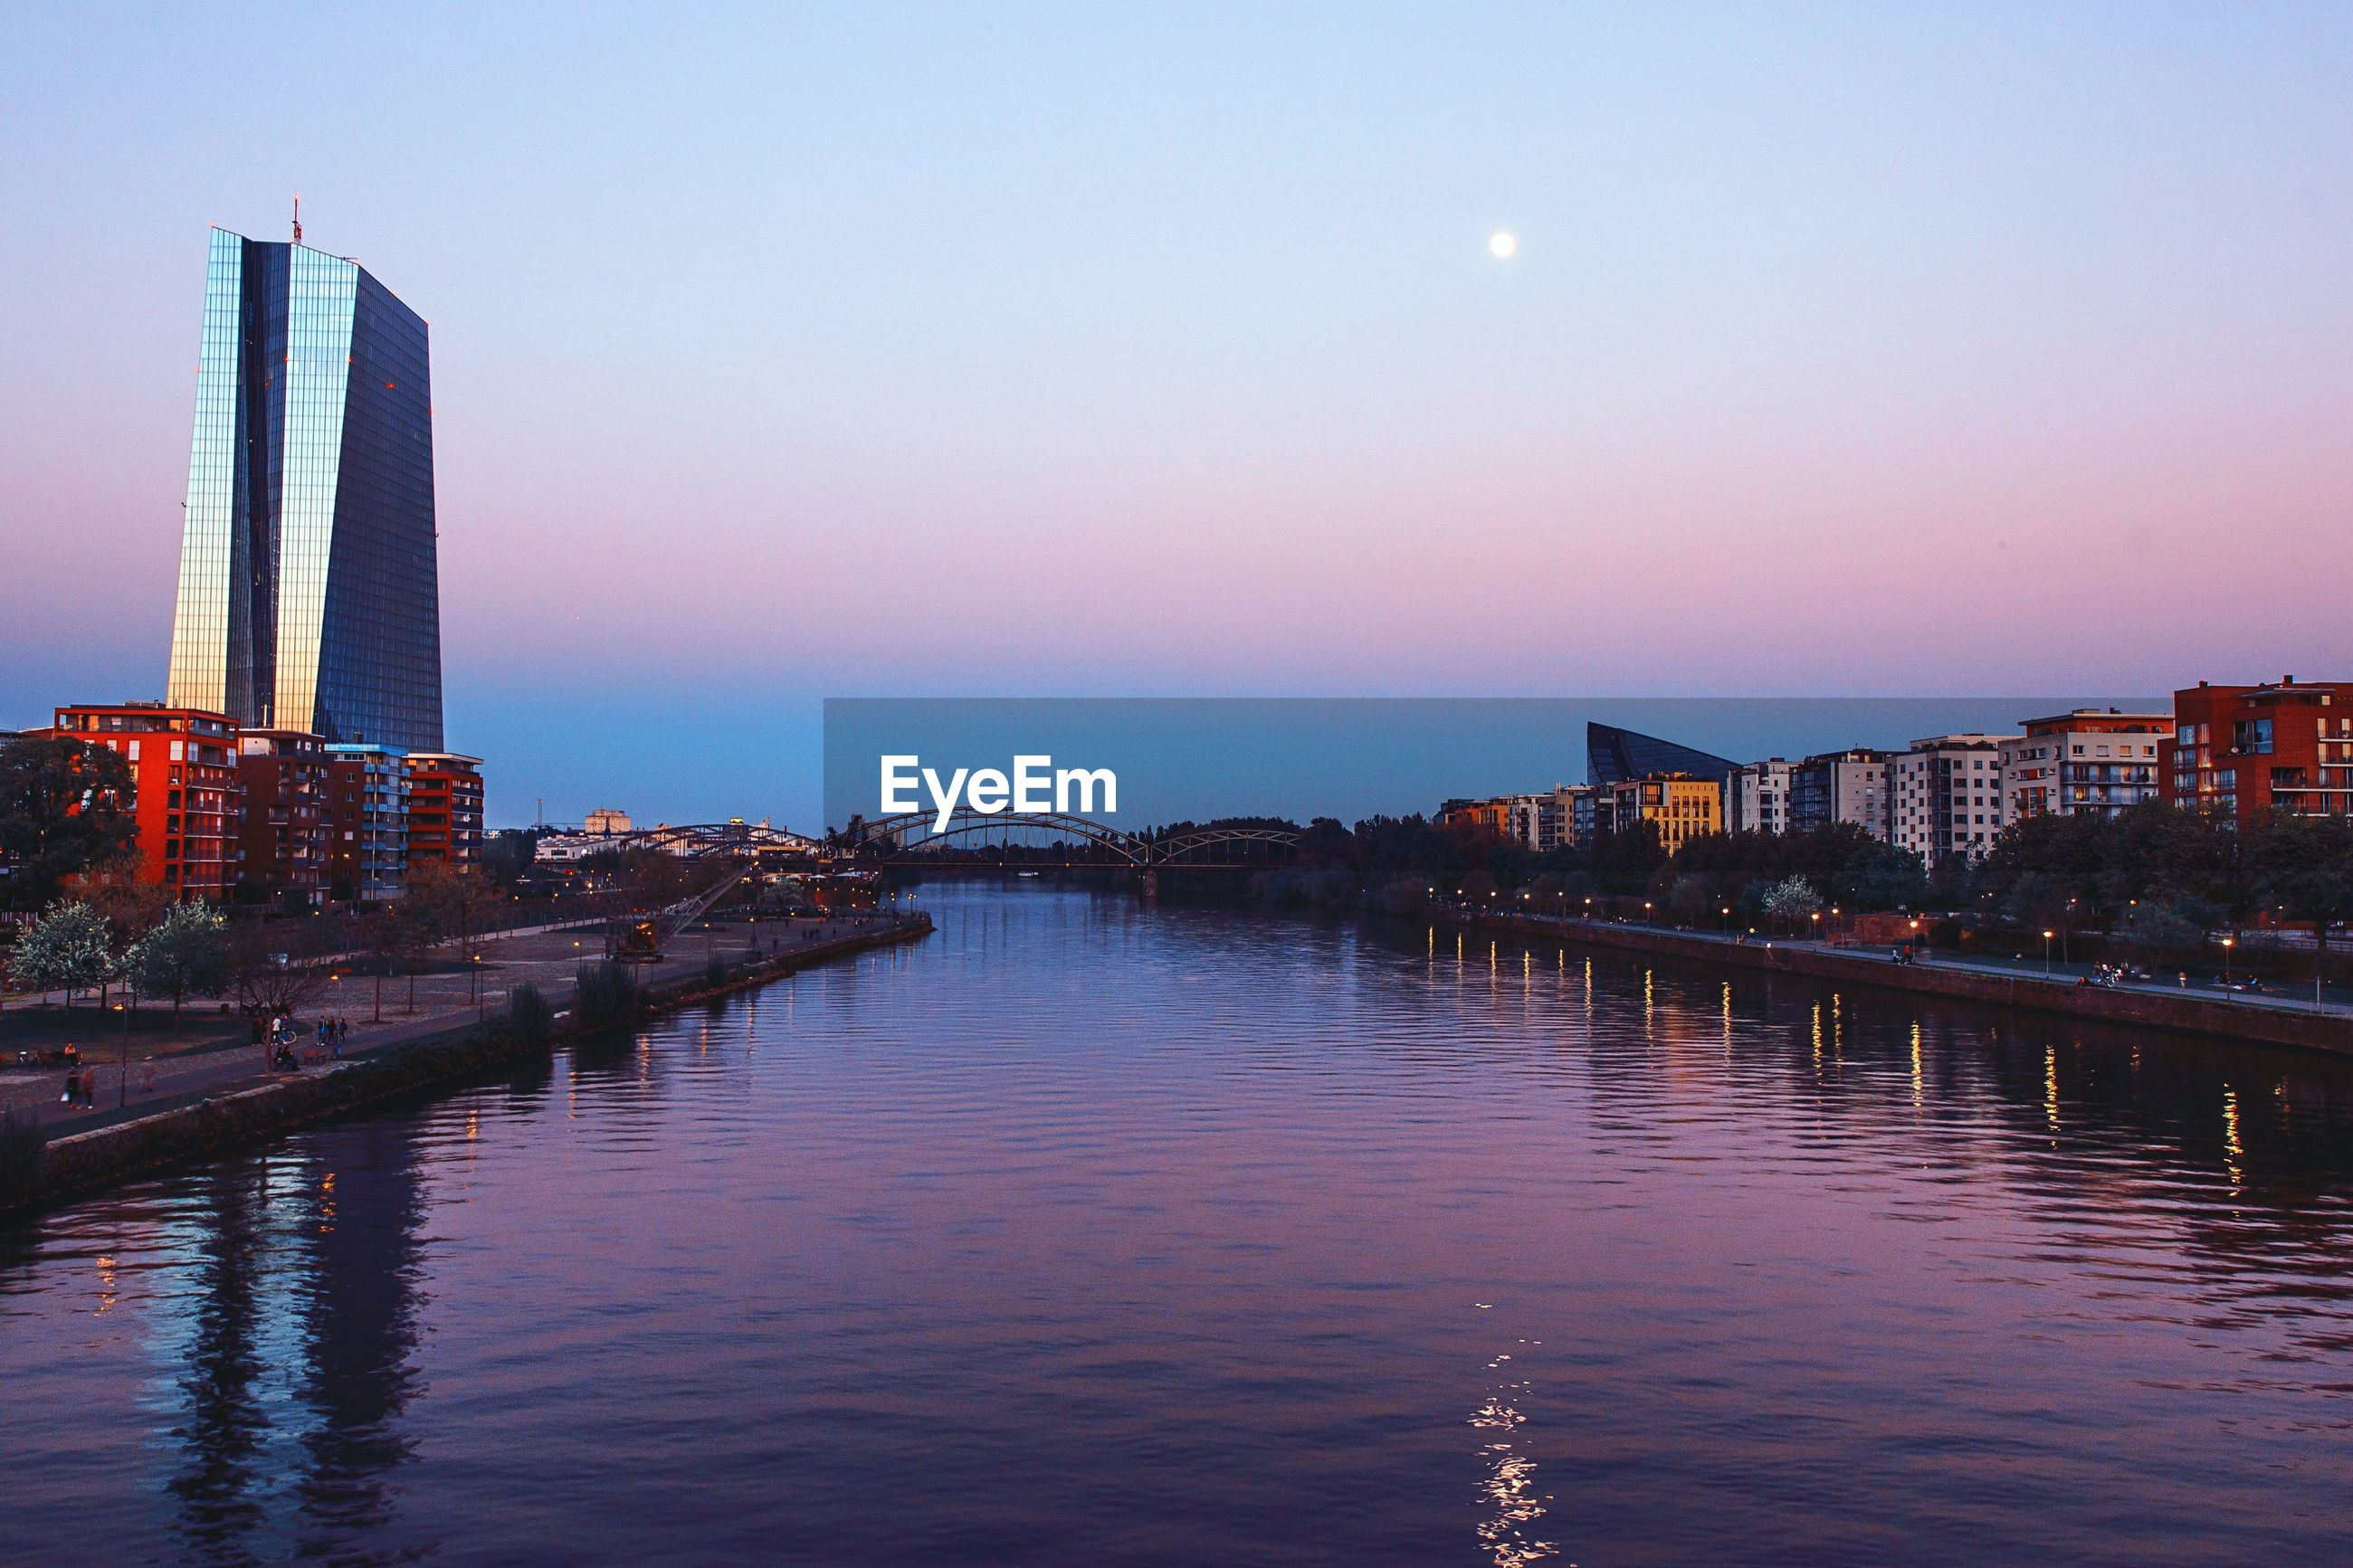 RIVER BY ILLUMINATED CITY AGAINST CLEAR SKY AT NIGHT